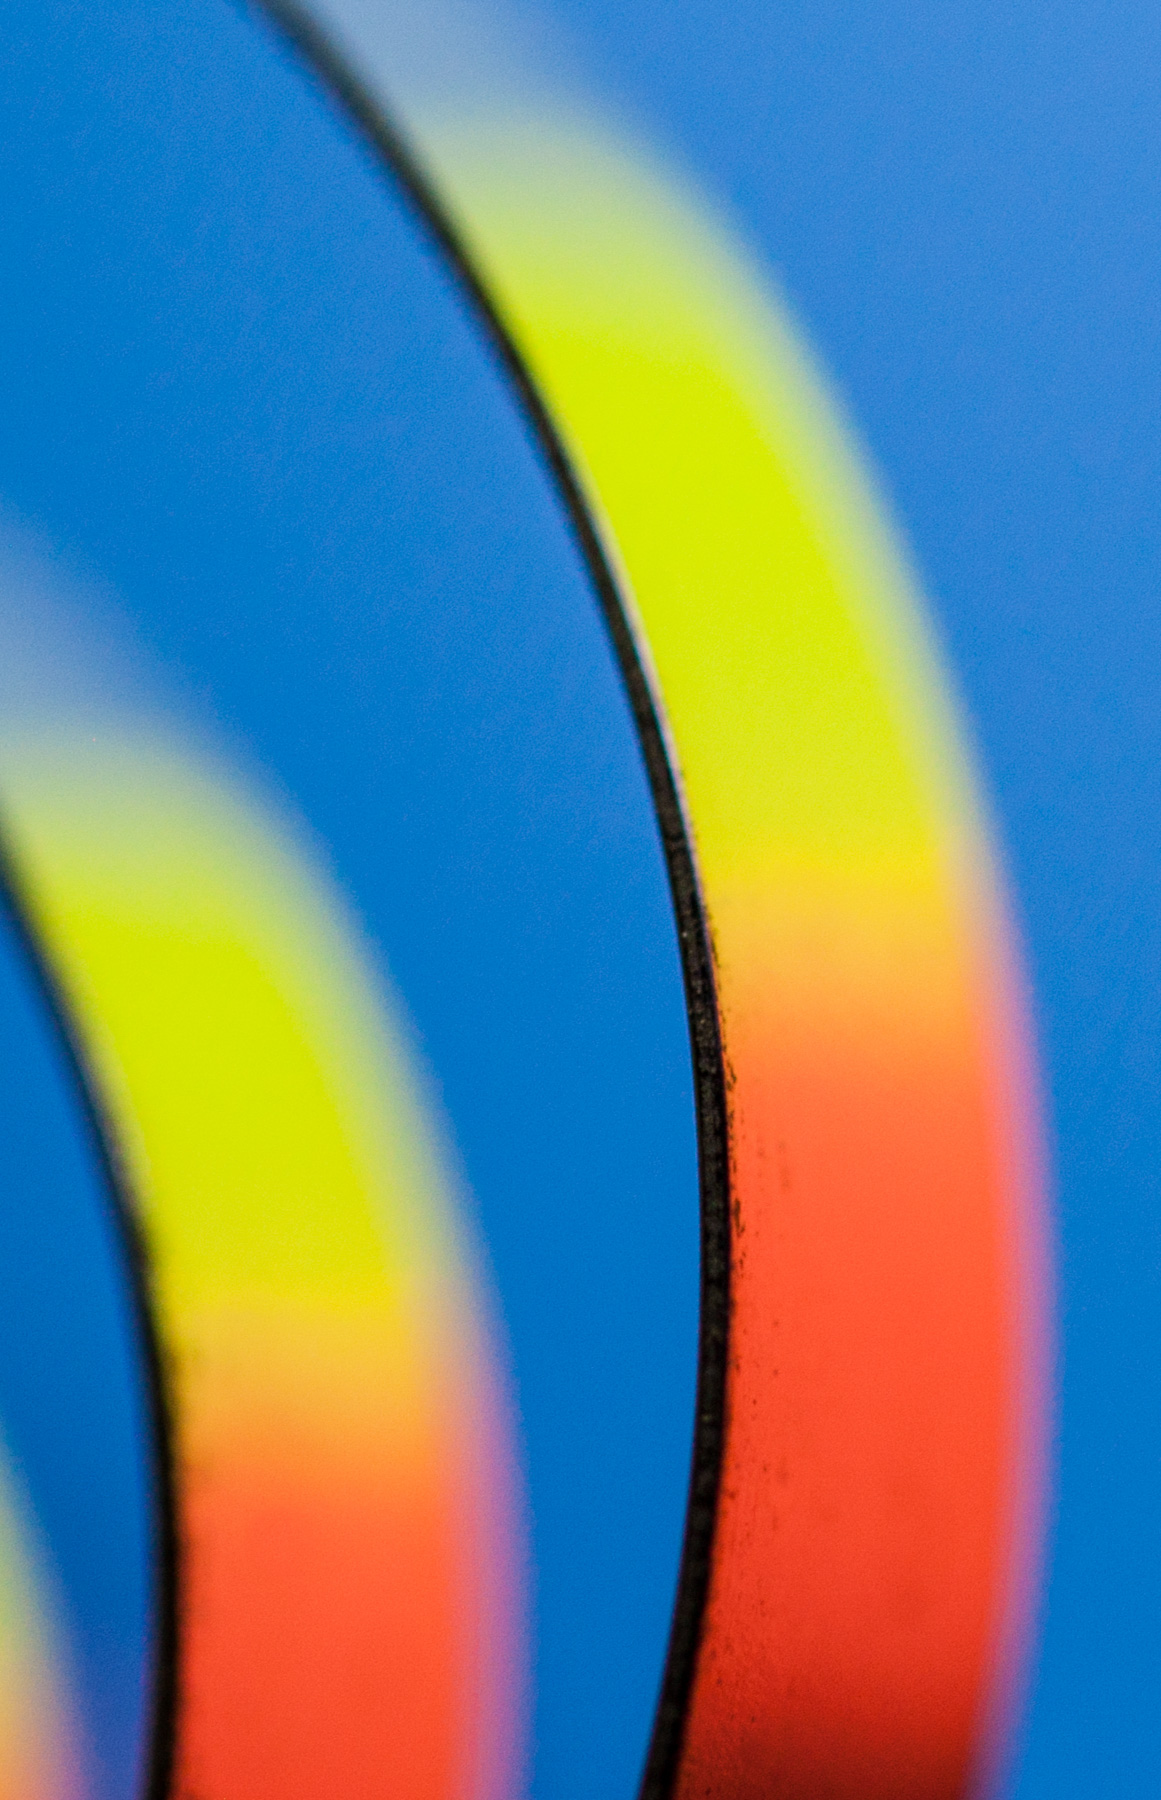 Macro Fine Art photo of color reflecting on steel bands.